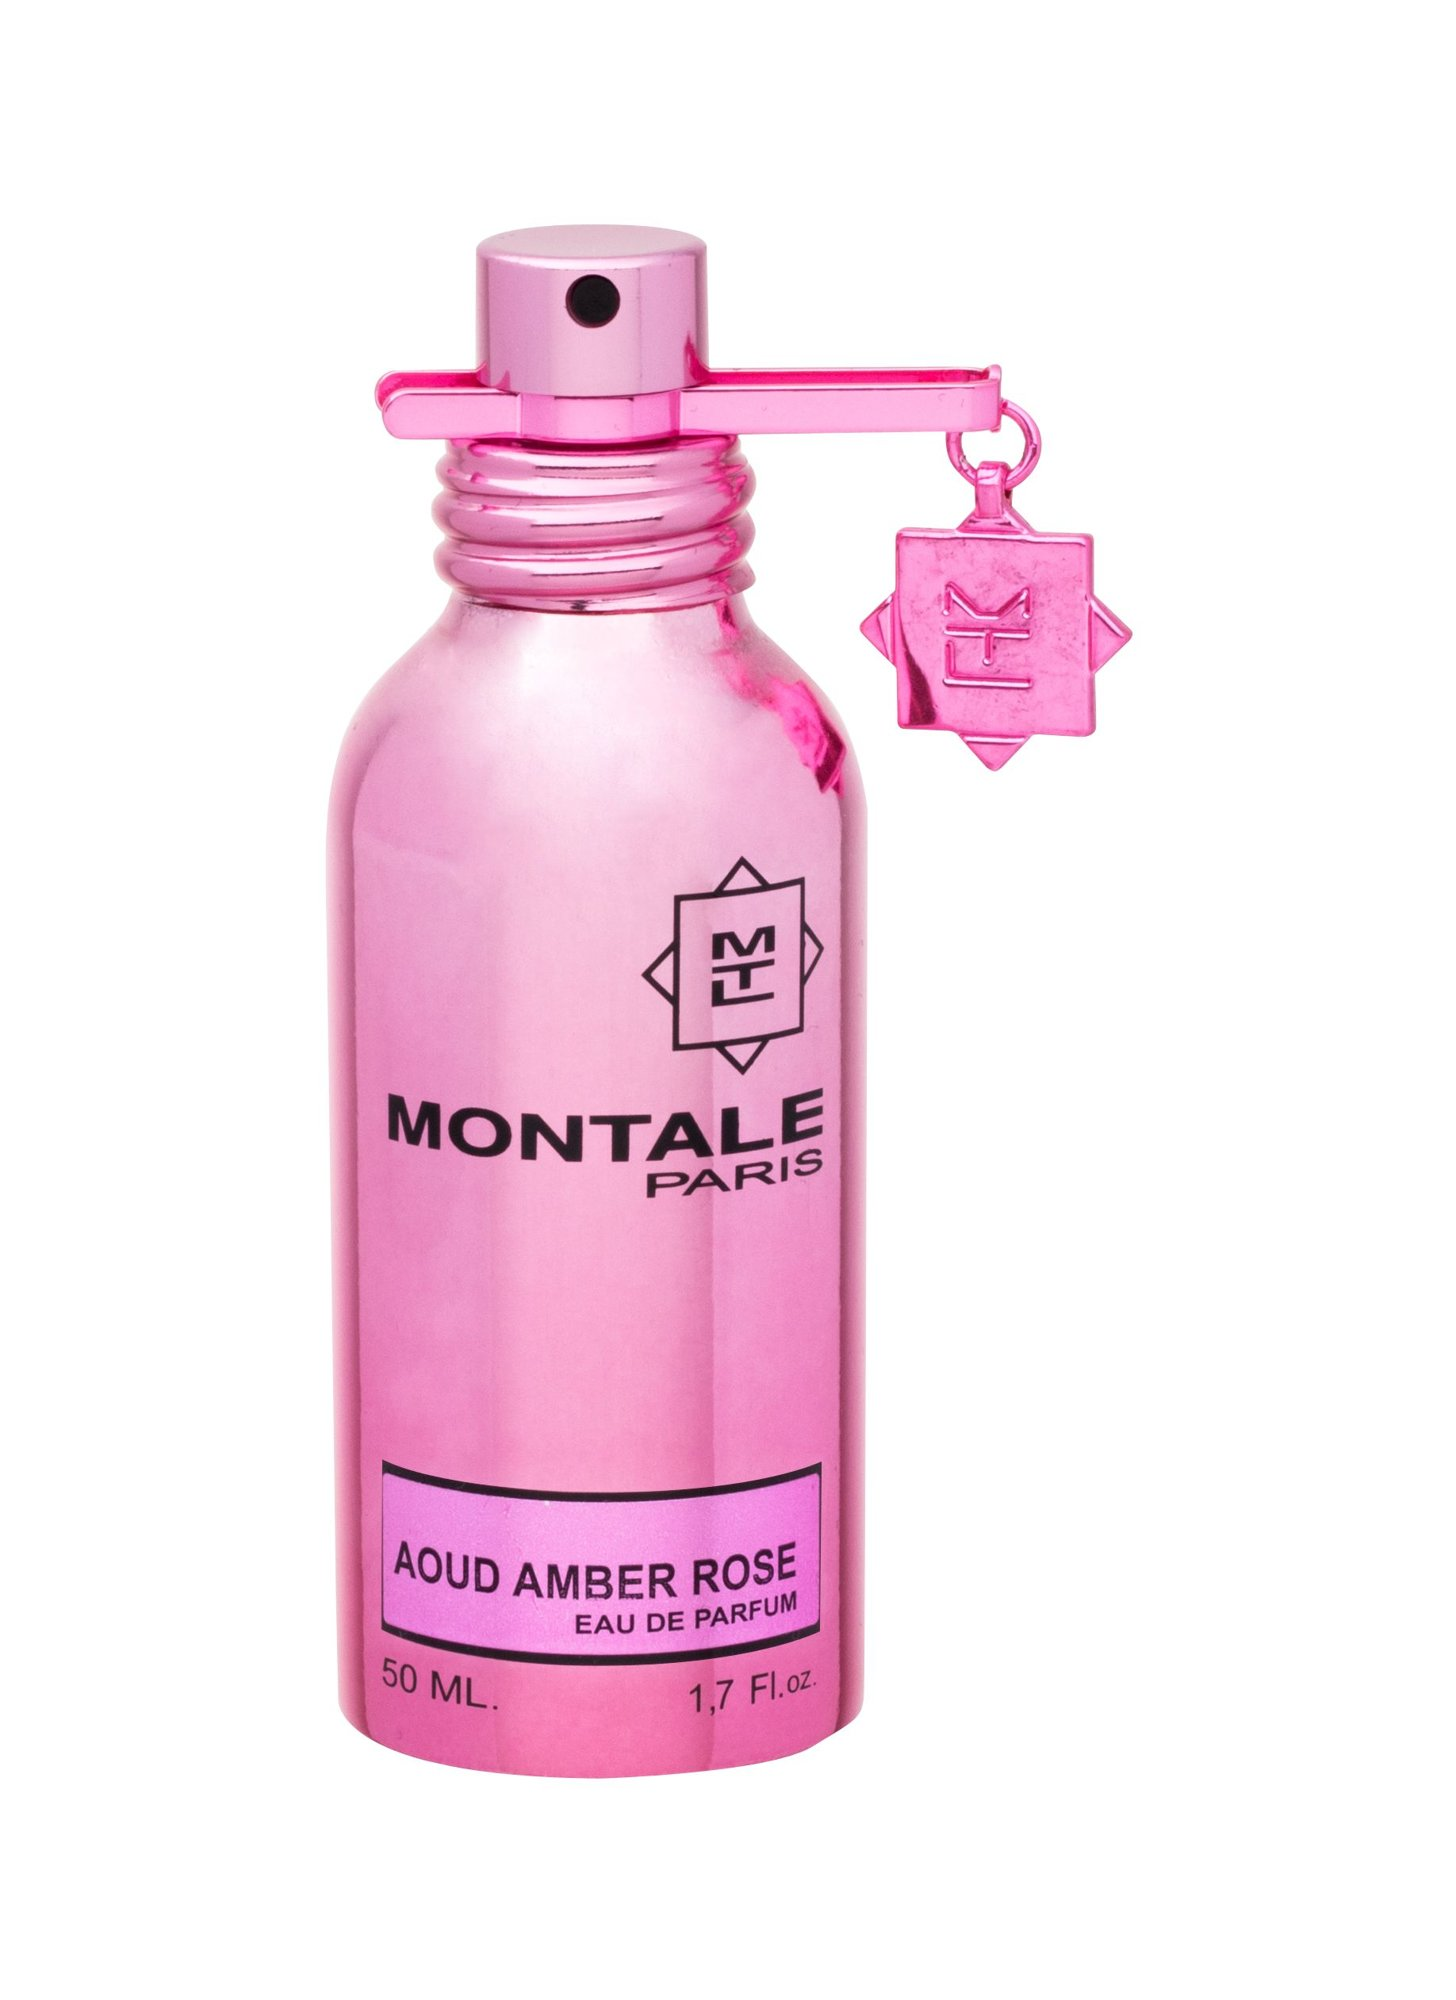 Montale Paris Aoud Amber Rose EDP 50ml